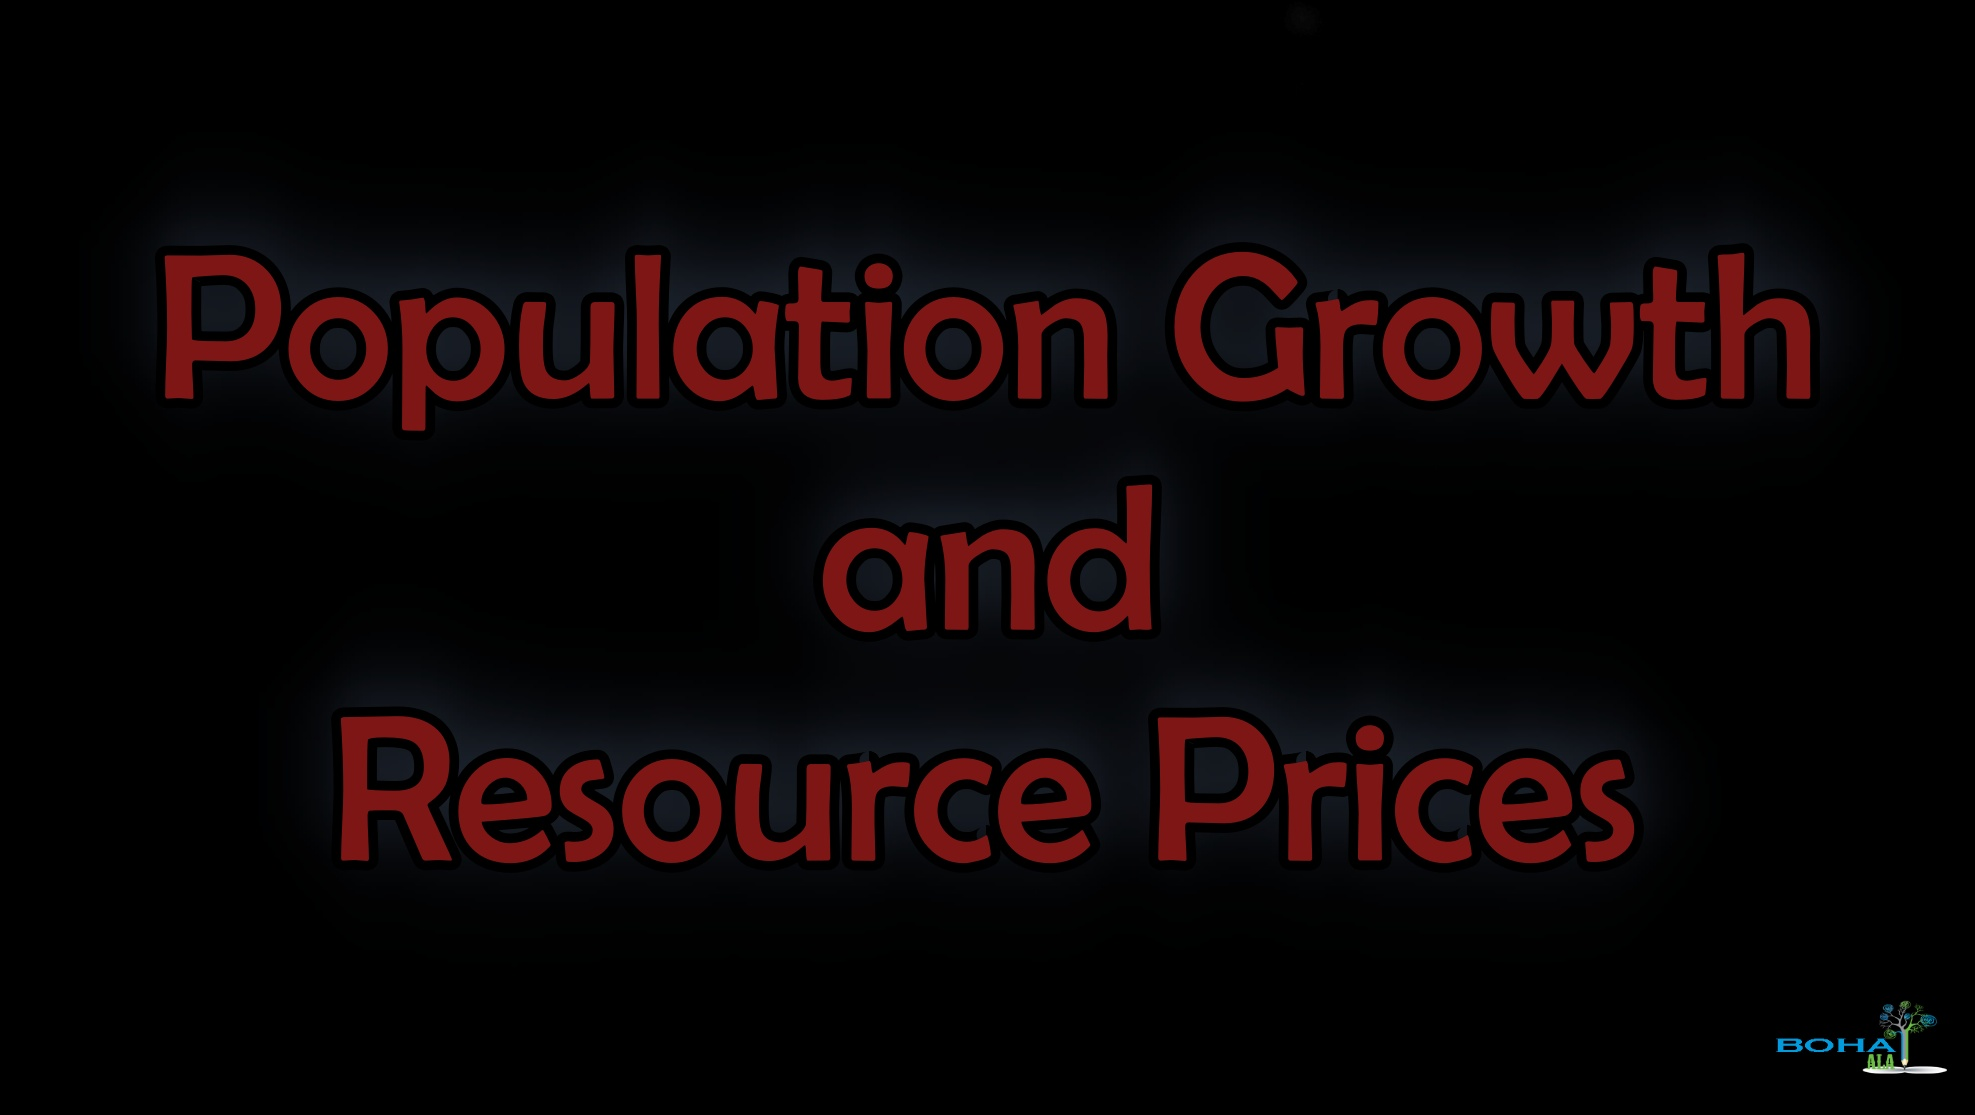 Impact of Increase in Population on Resource Prices